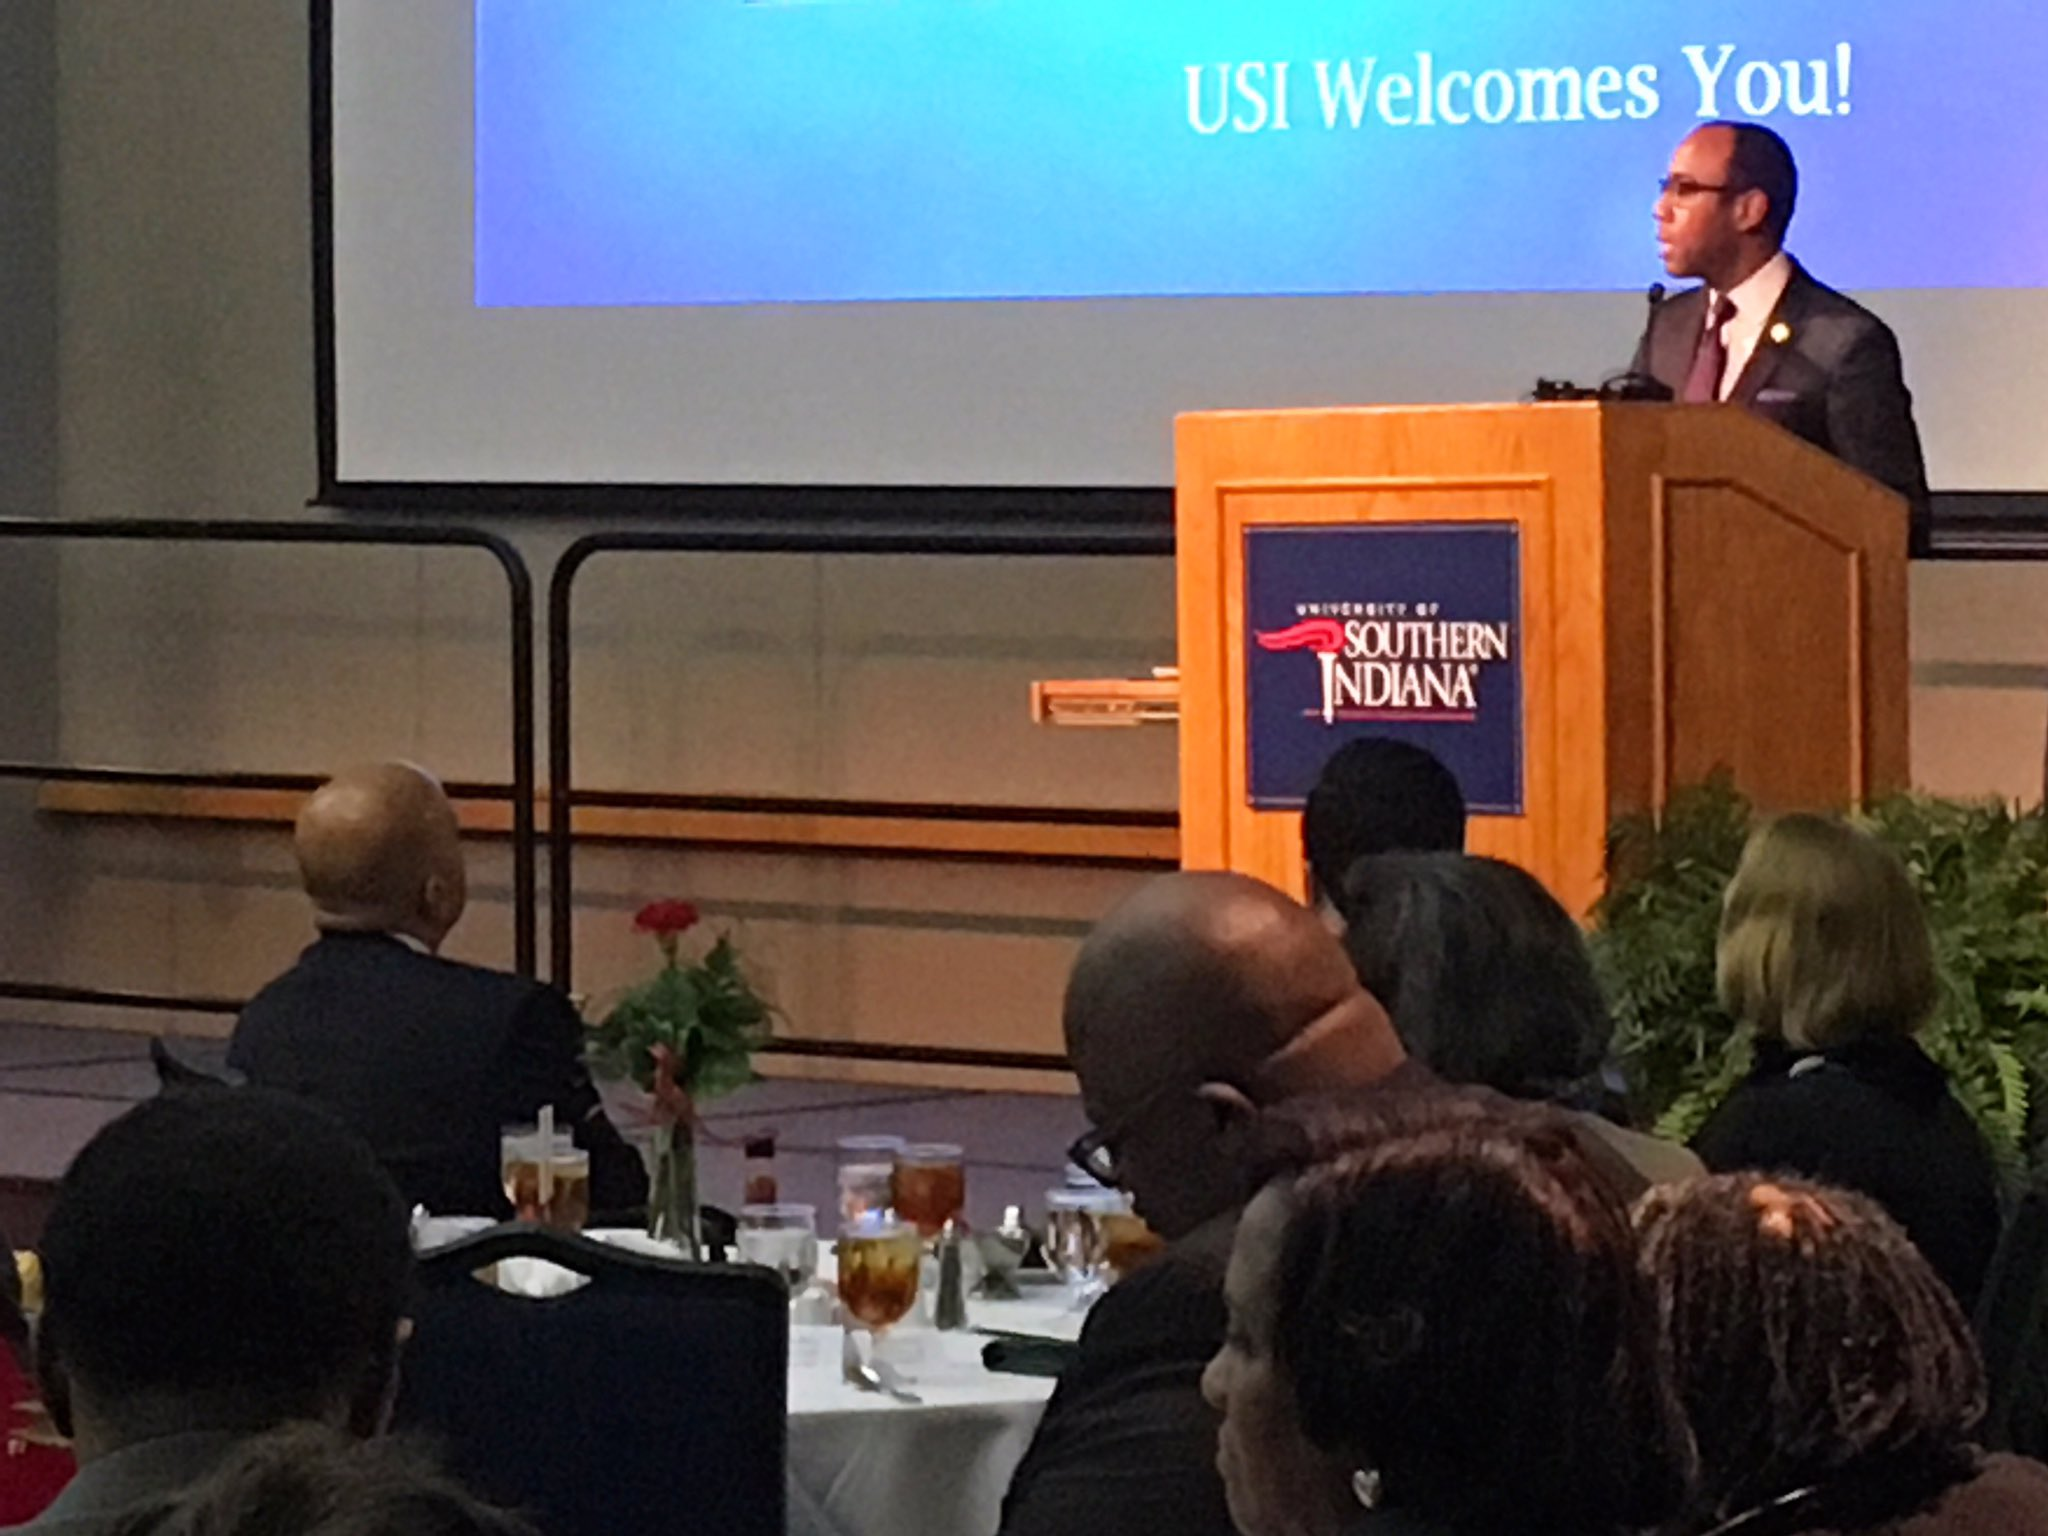 Welcome to Evansville and welcome to USI, @CornellWBrooks #USIMLK https://t.co/voIHTAwbJA